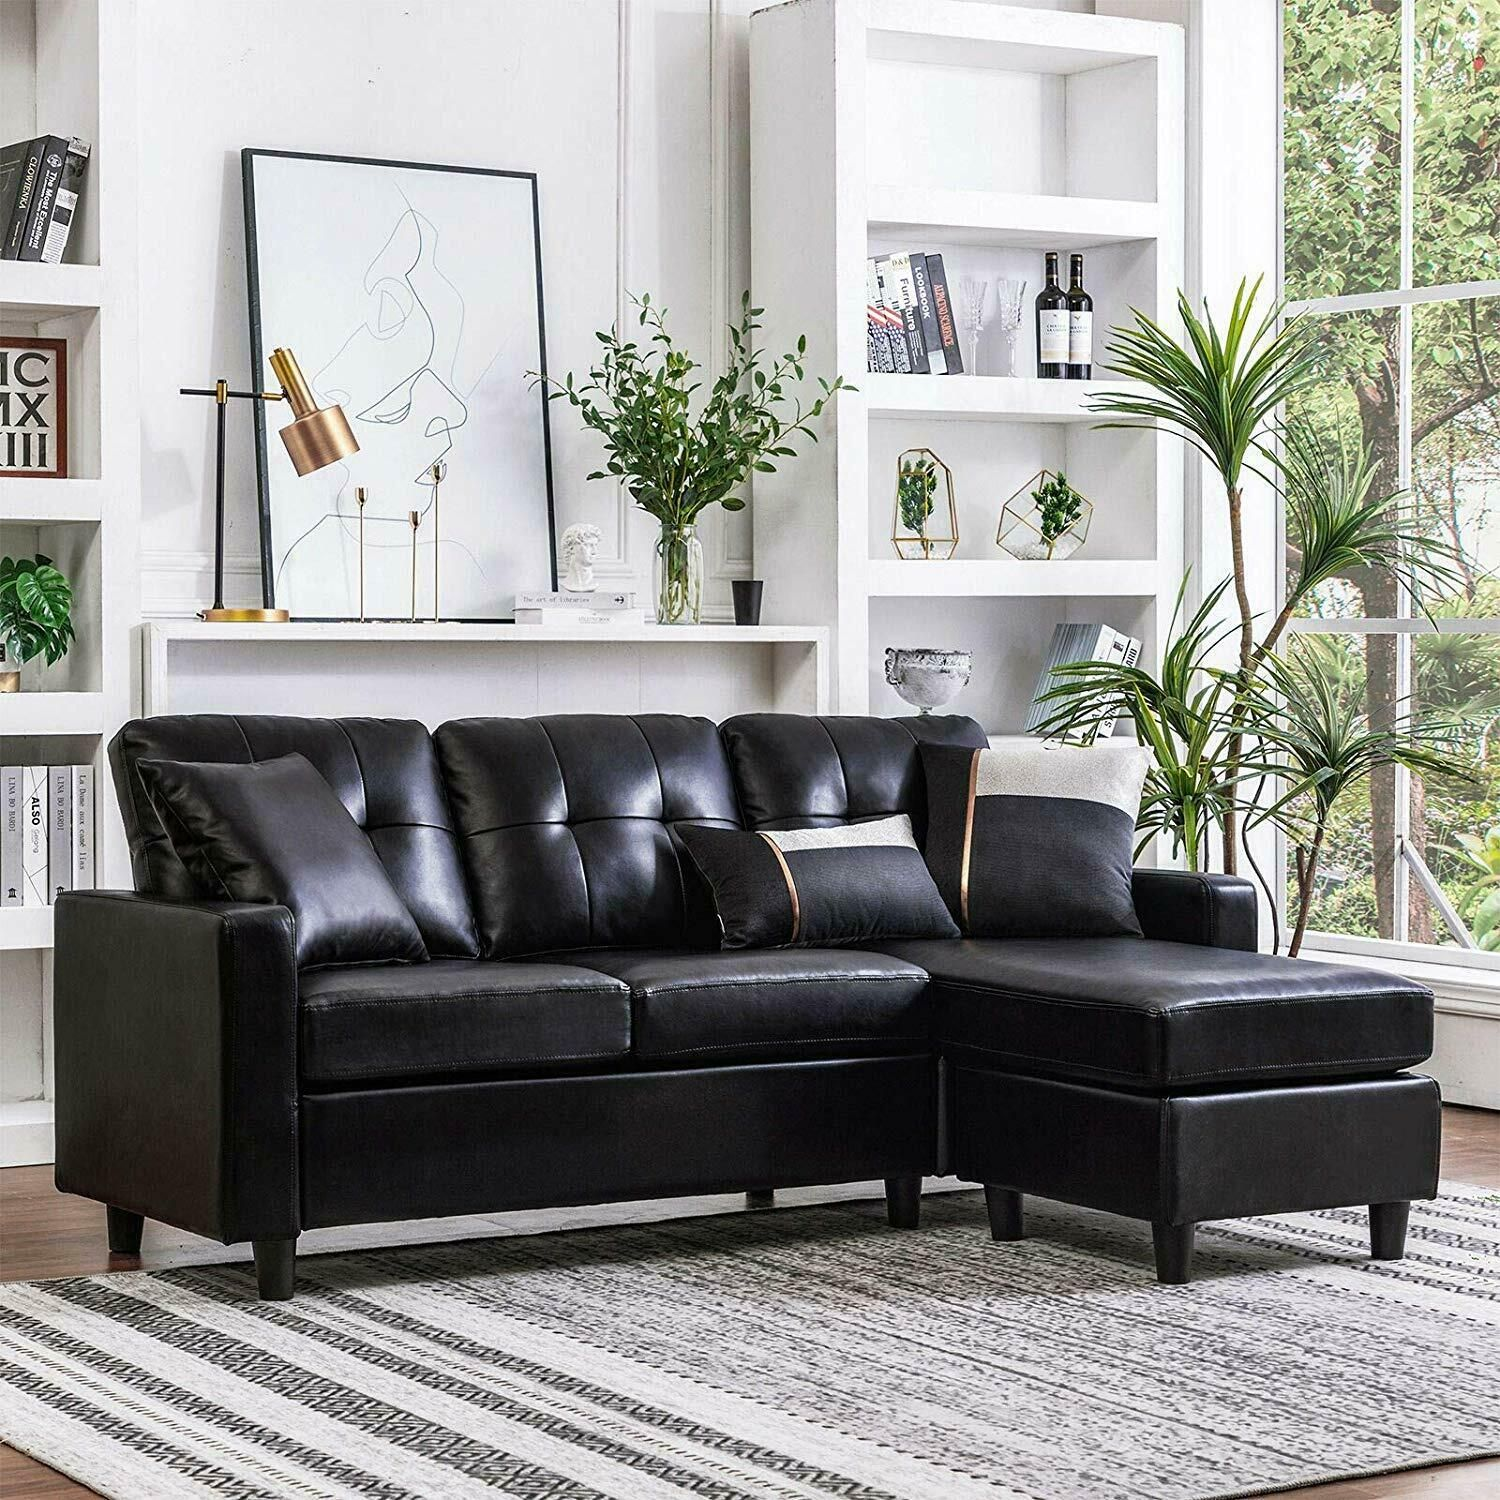 Convertible Sectional Sofa Couch Leather LShape Couch